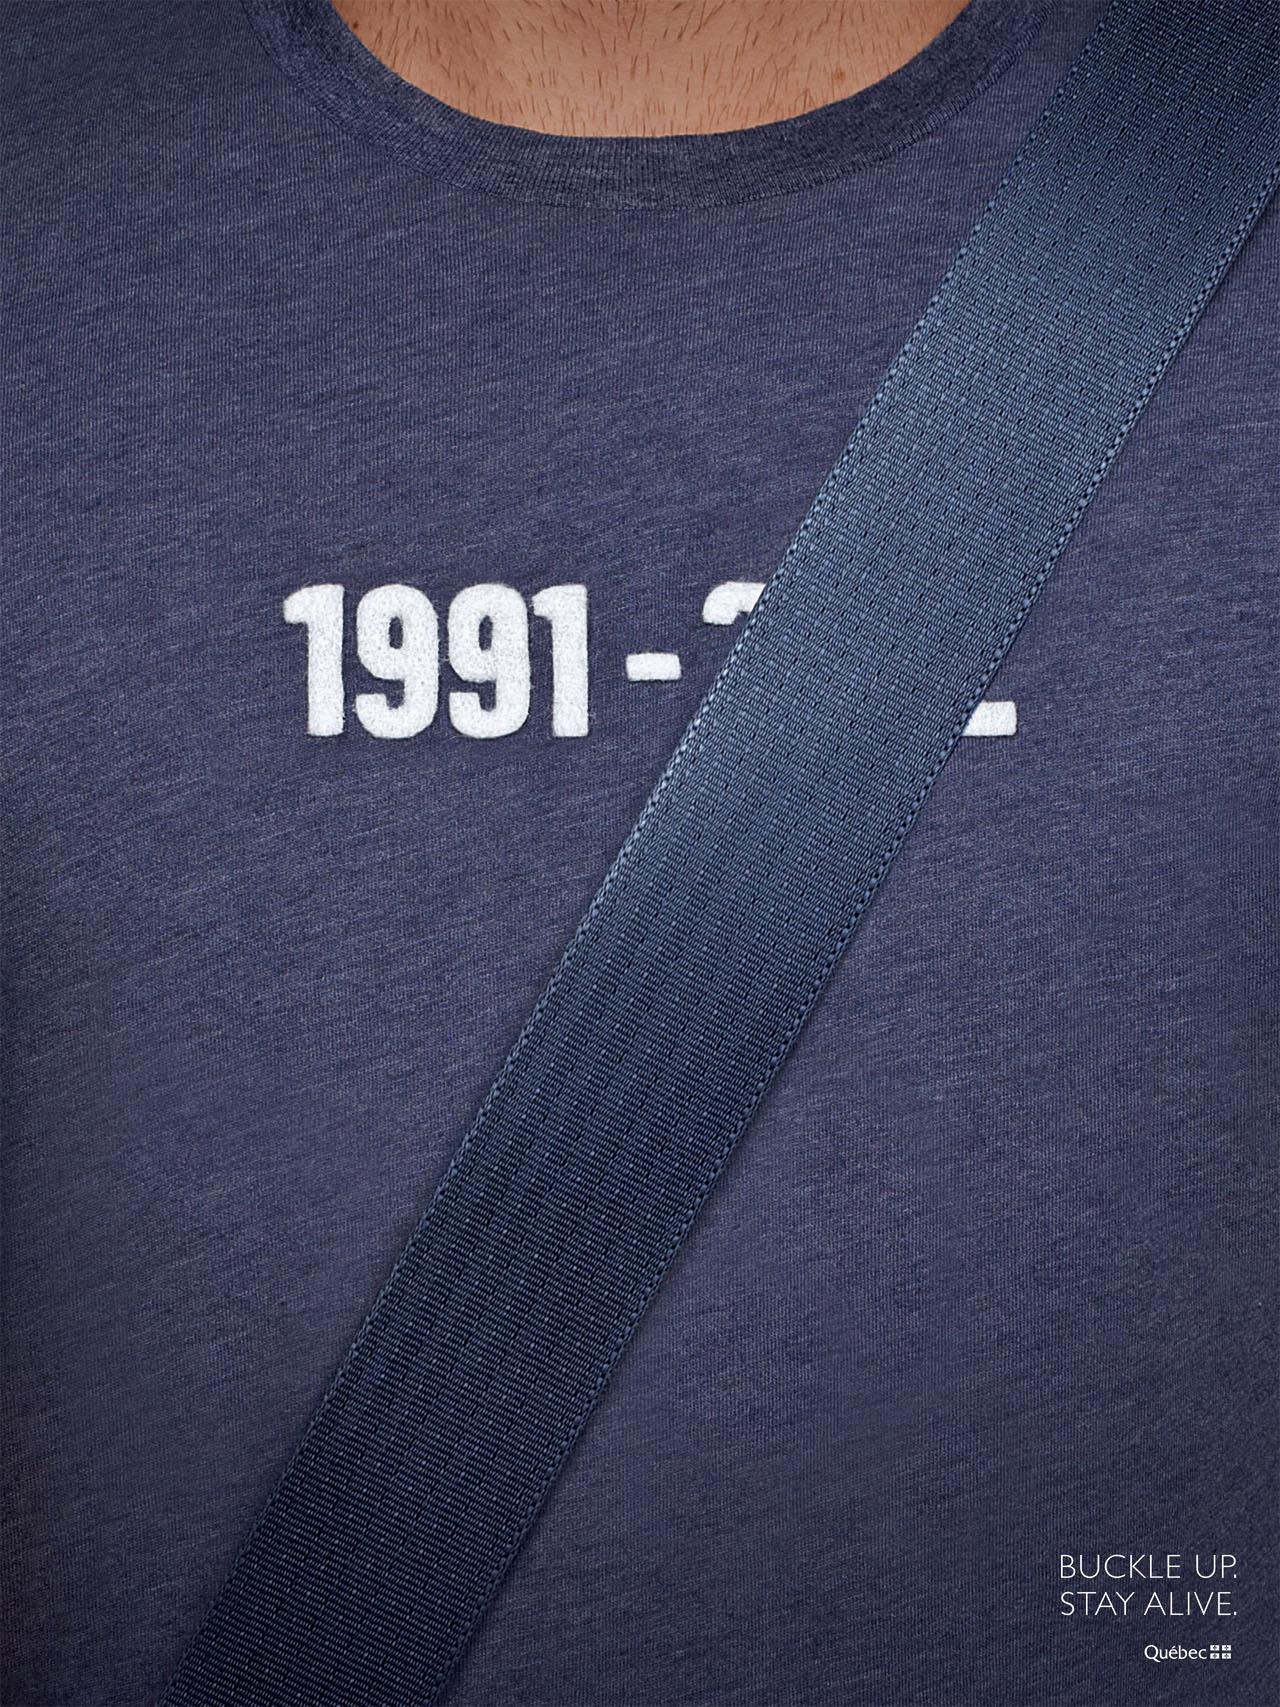 Quebec Automobile Insurance Society Print Ad -  Seatbelts, Blue